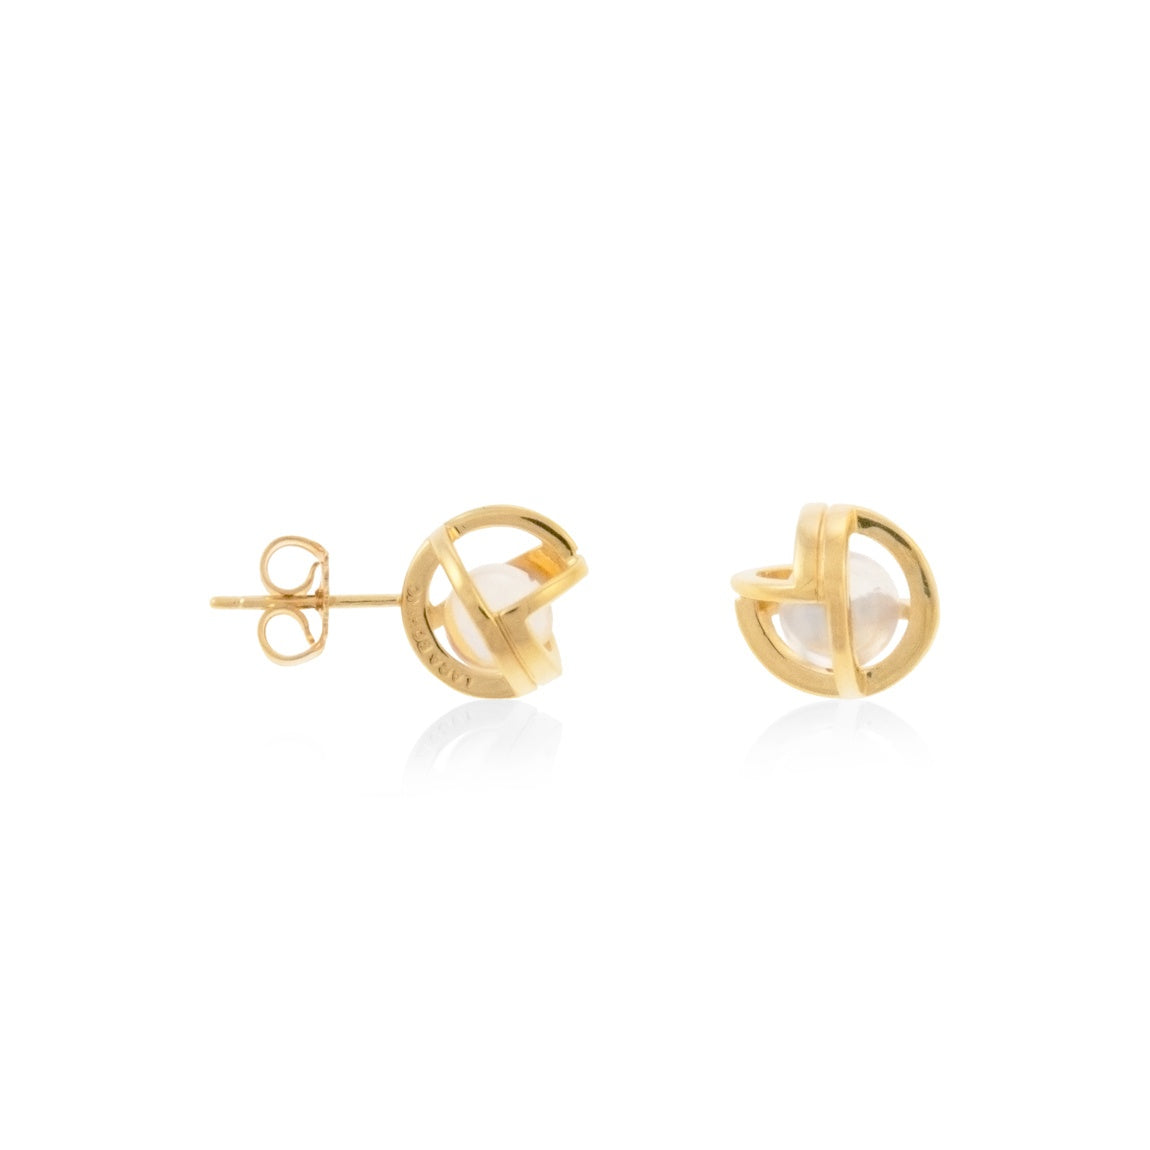 Planetaria Studs 10 </br> 18ct Yellow Gold on Sterling Silver